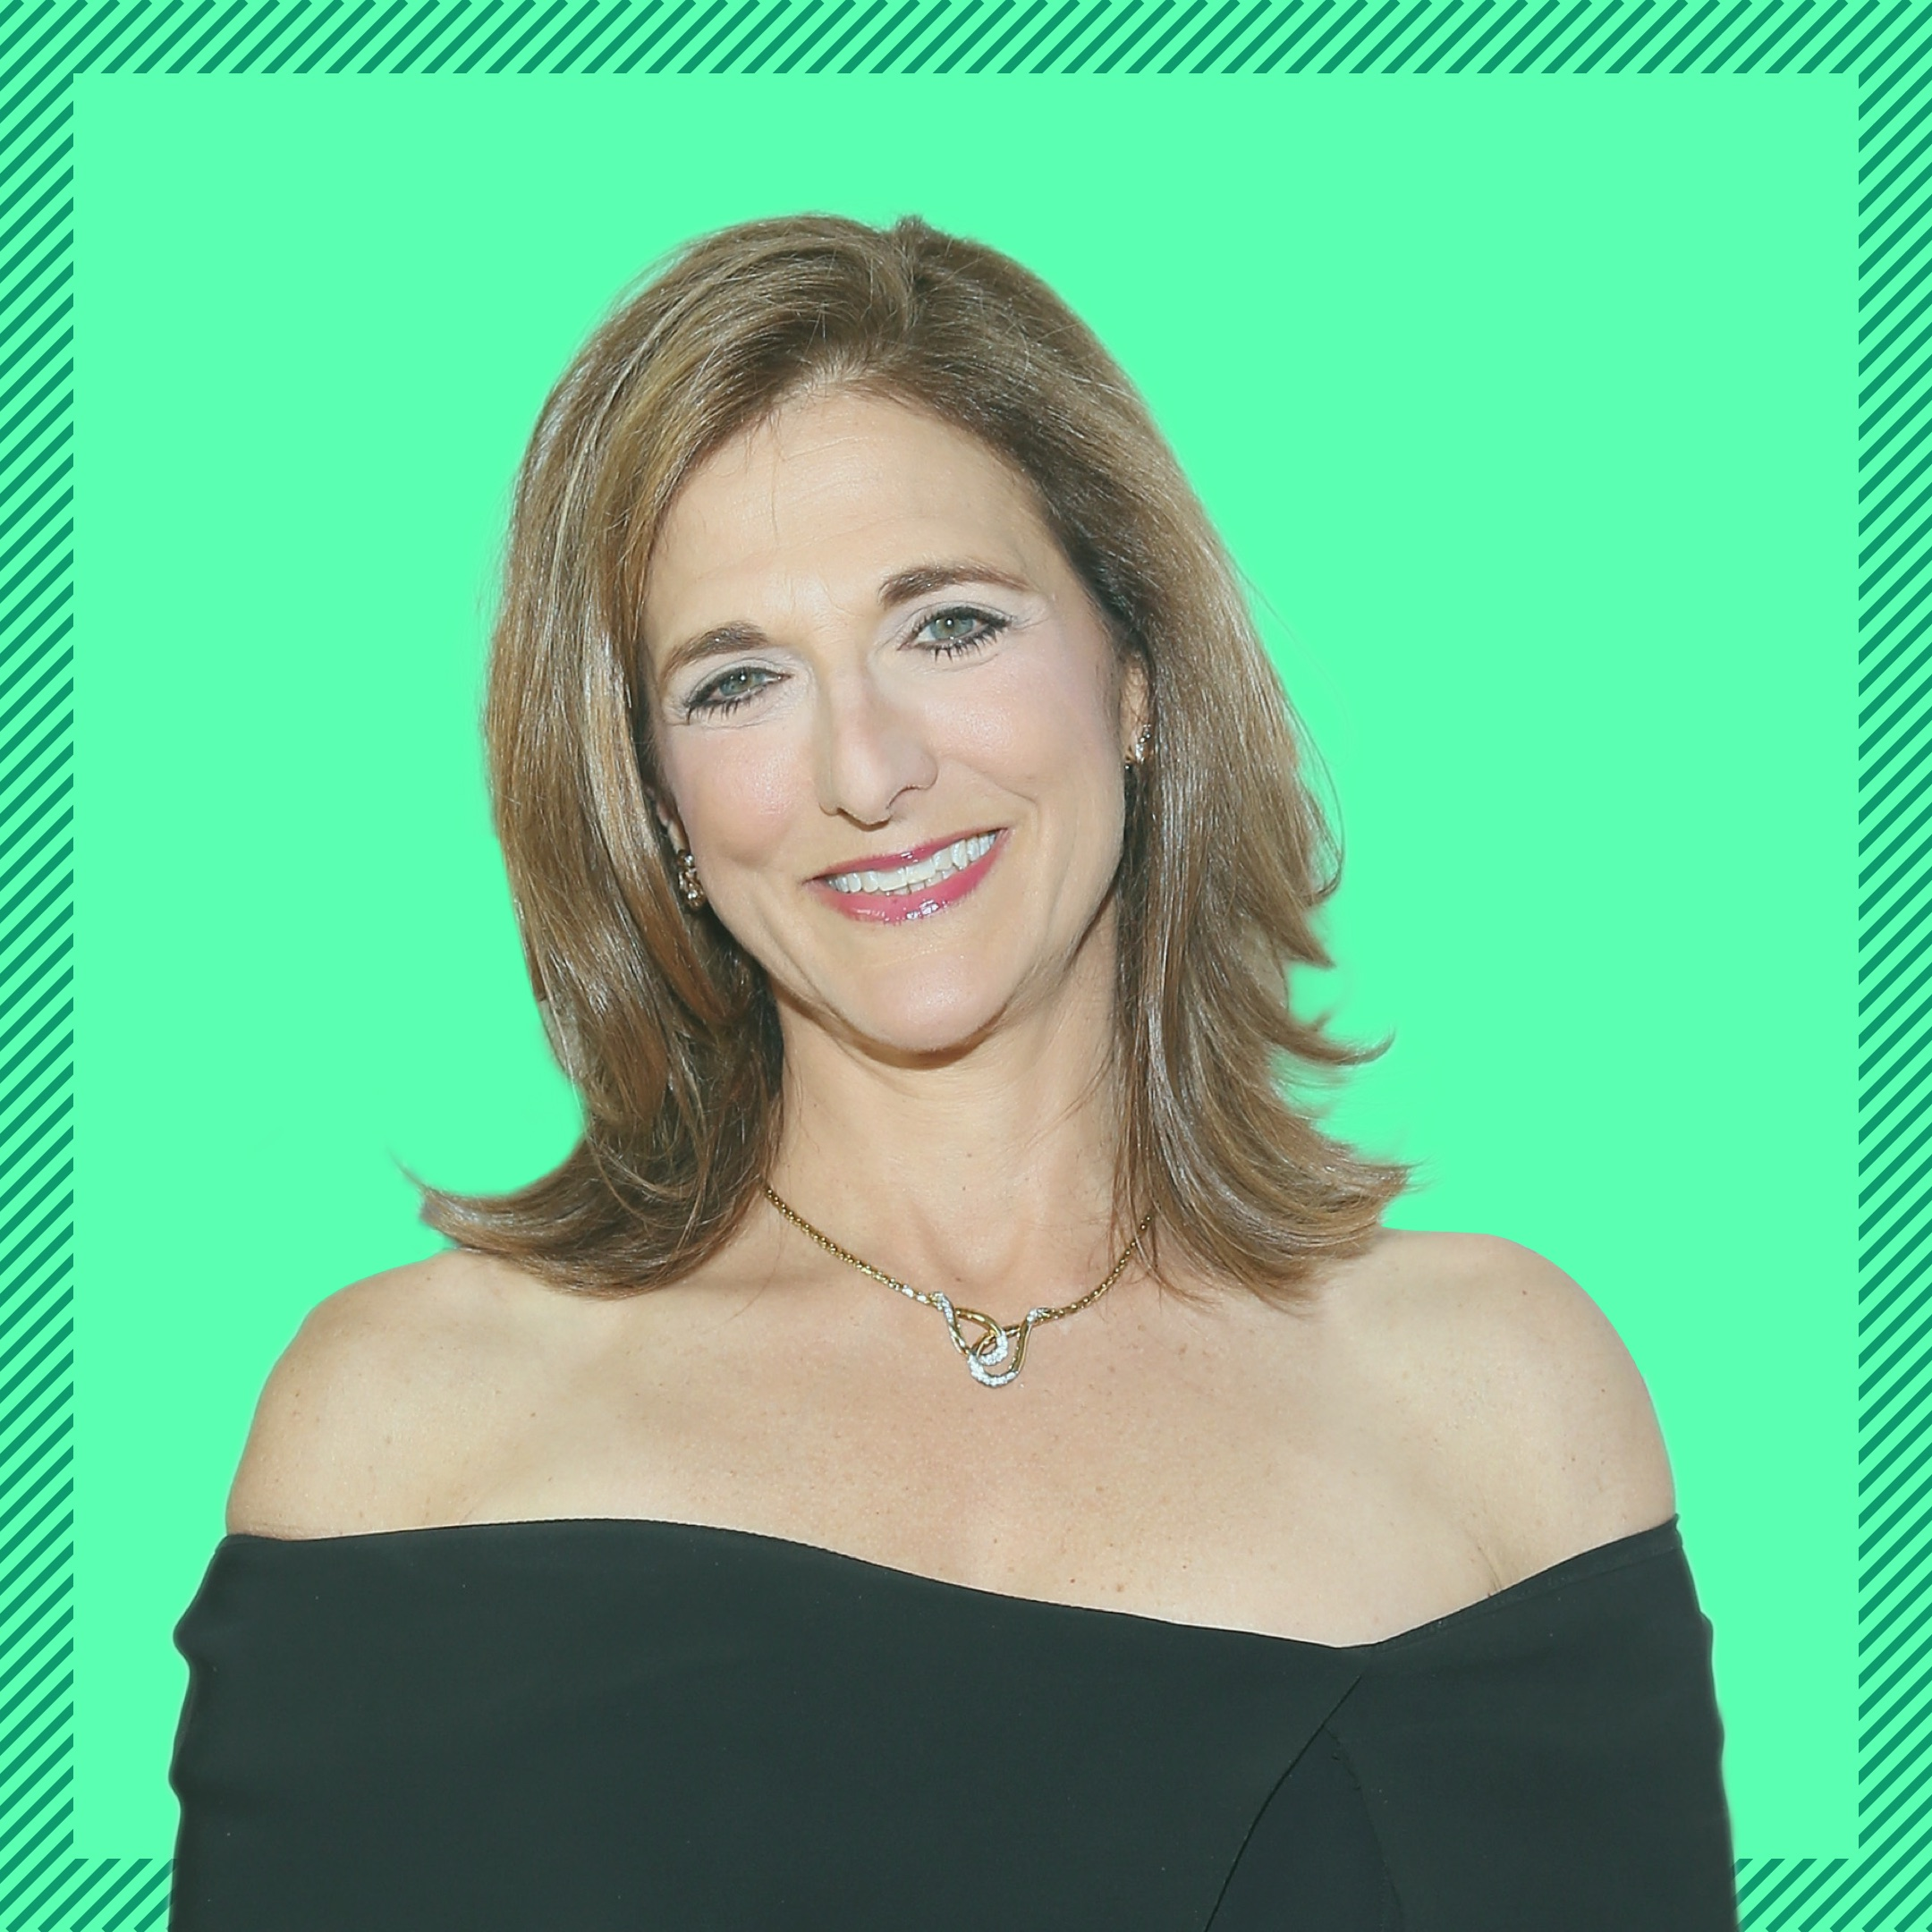 """Photo of Jill Schlesinger, a certified financial planner and host of the """"Jill on Money"""" podcast"""